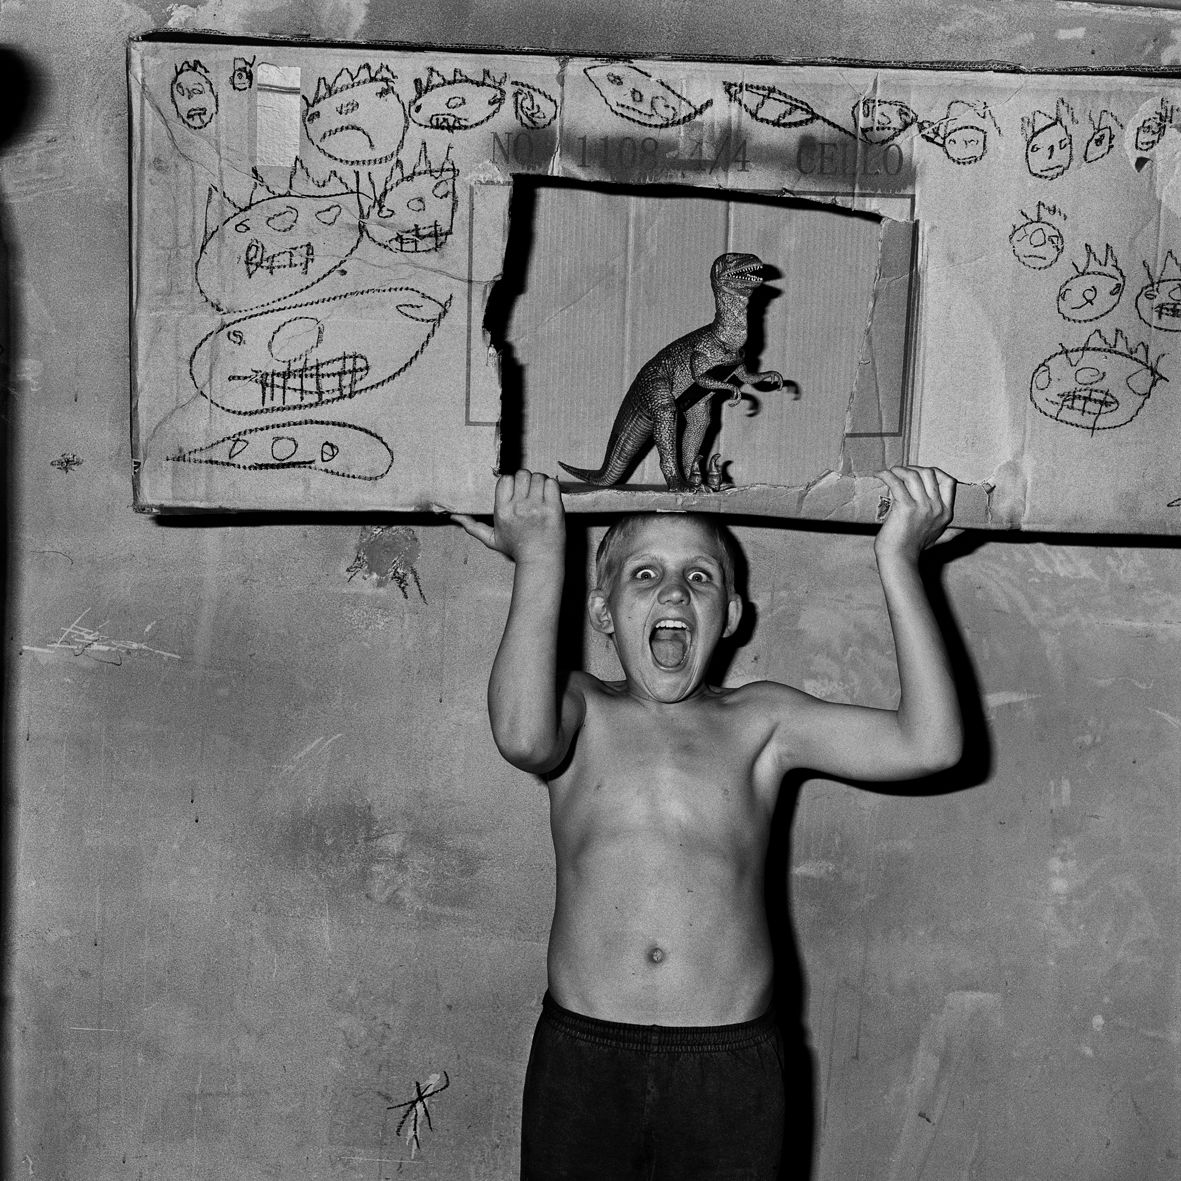 Photographed by Roger Ballen.